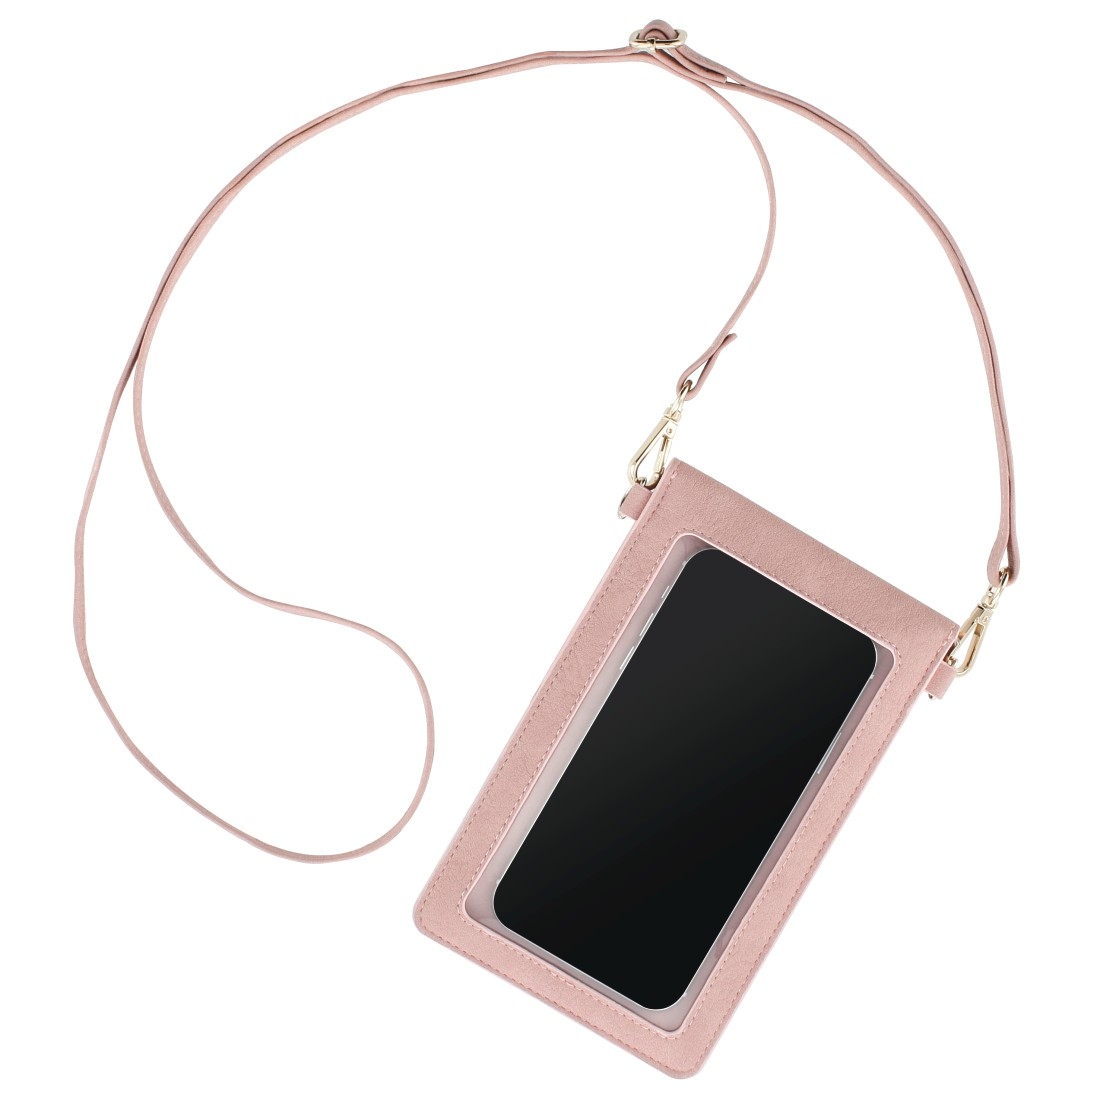 abx2 High-Res Image 2 - Hama, Cross-Body Bag, Universal, for Smartphones, pink